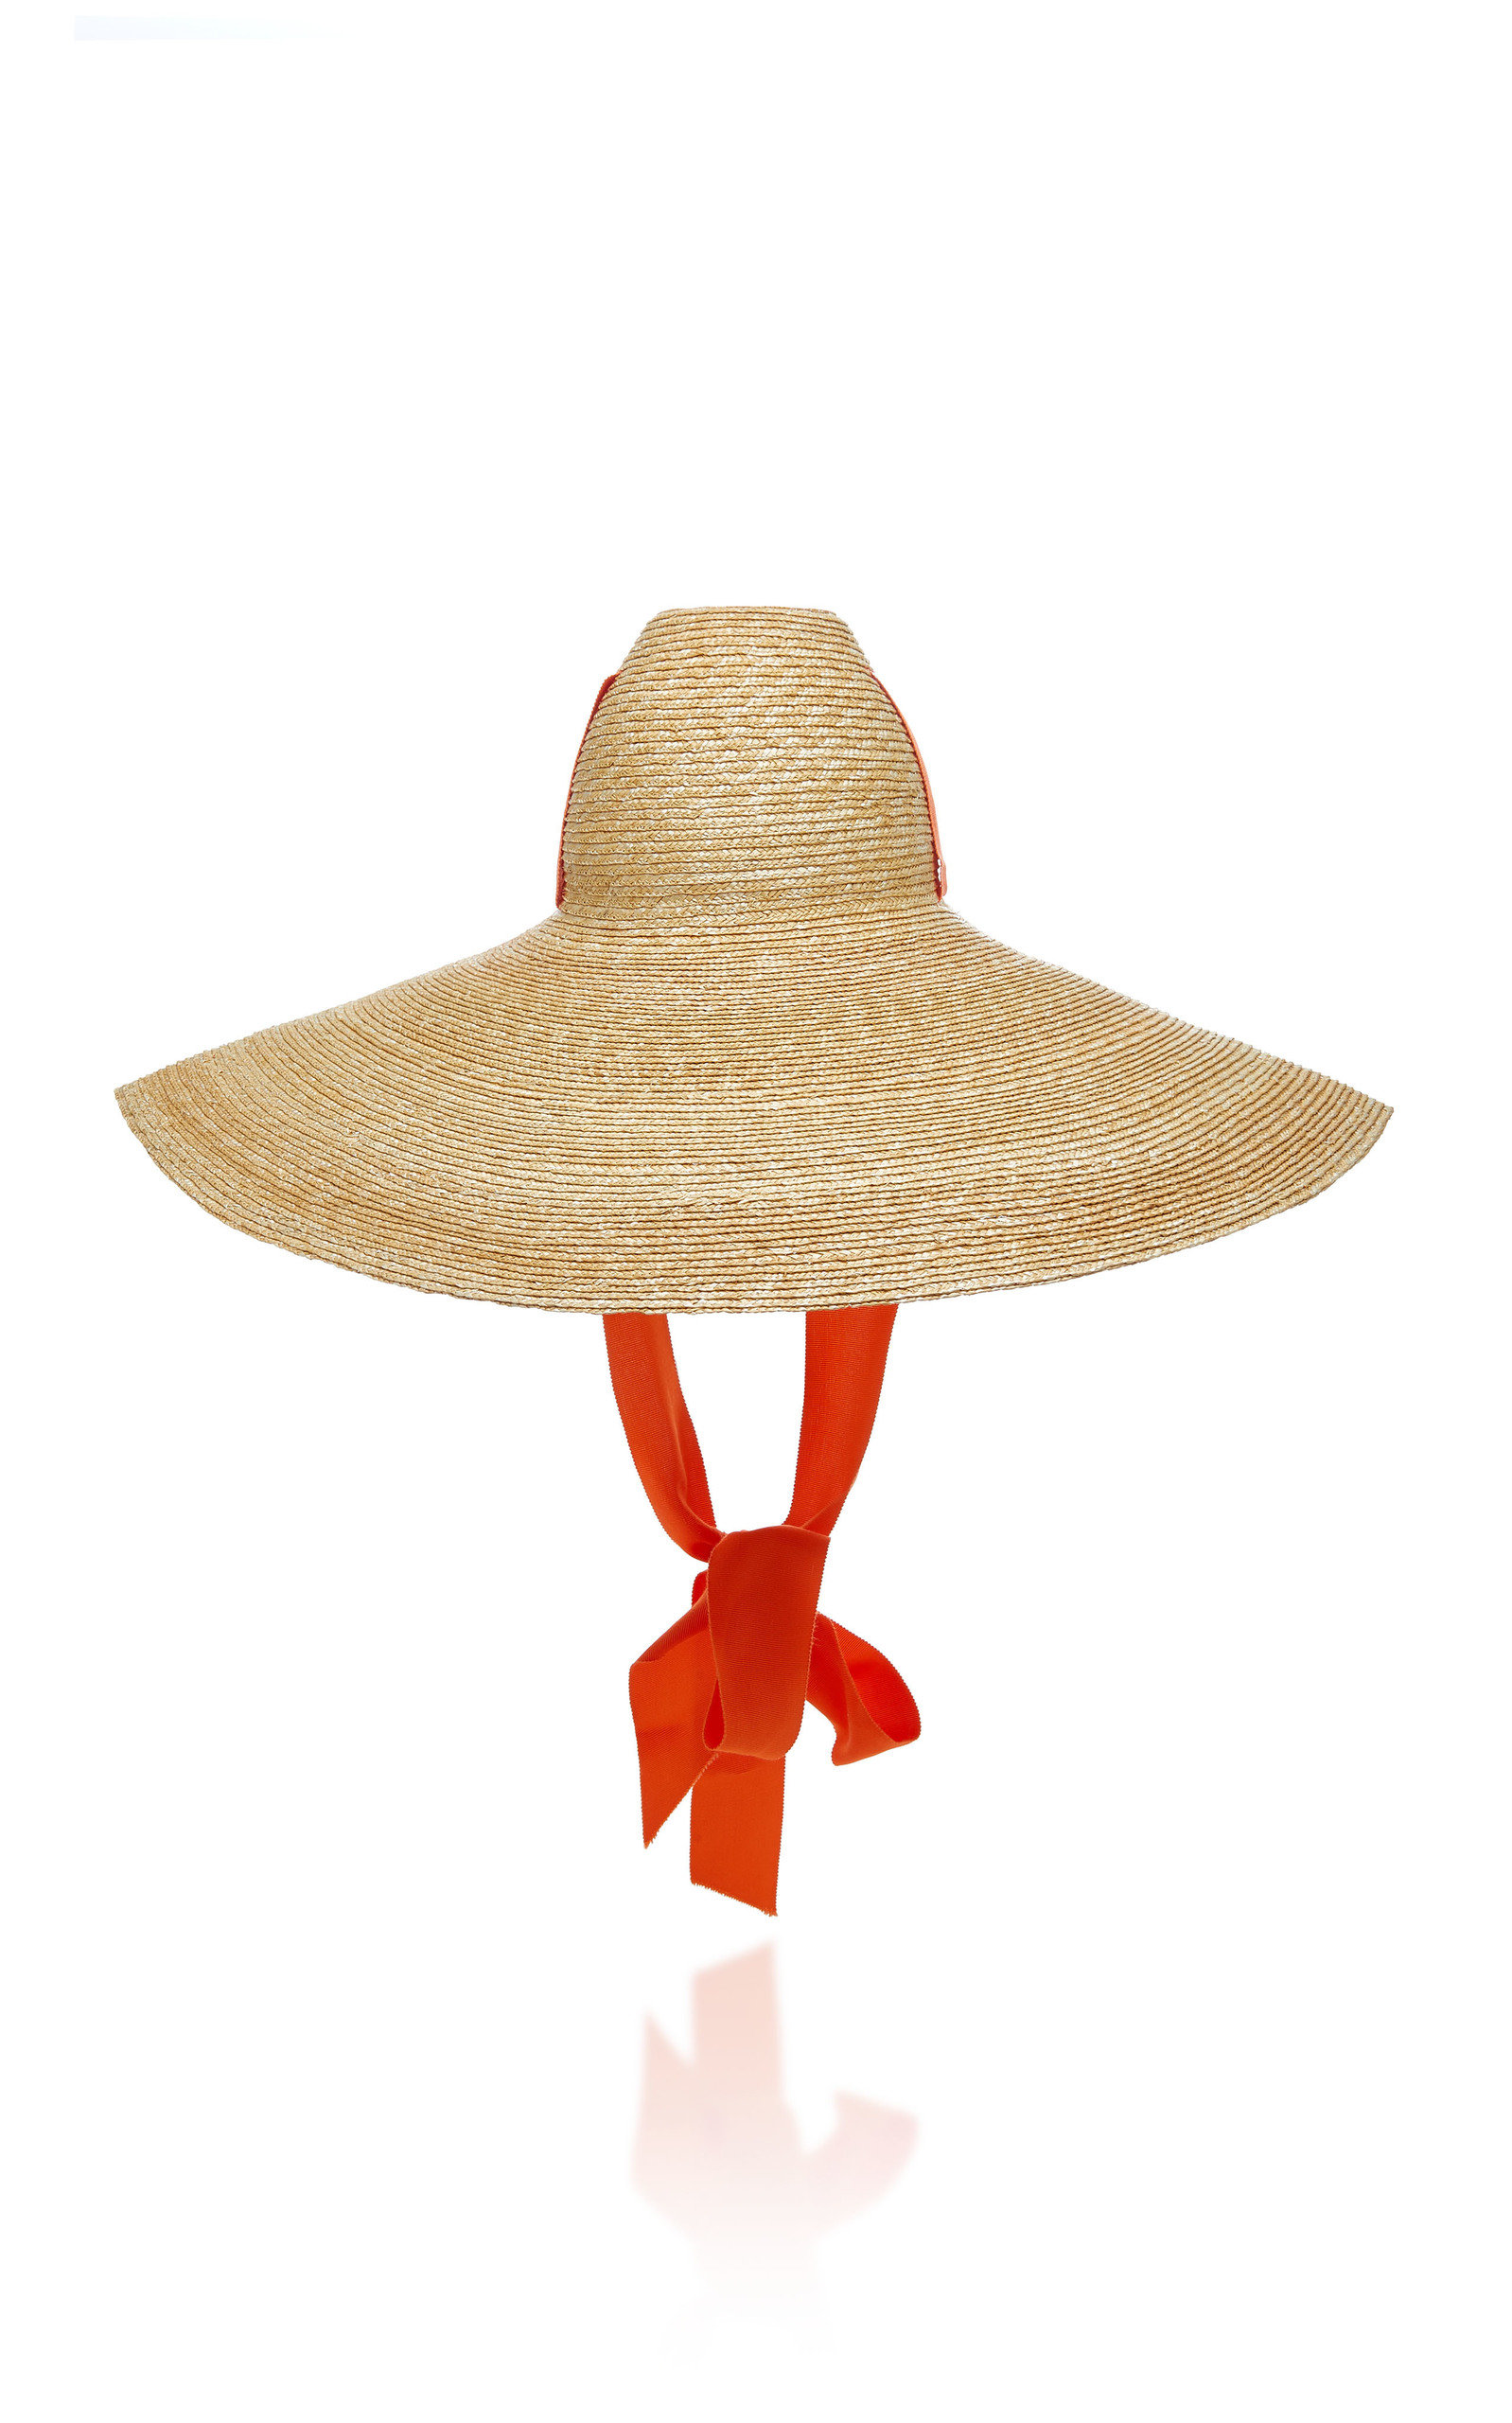 dcee9b790a5 Sugar Cone Oversized Straw Hat by Lola Hats